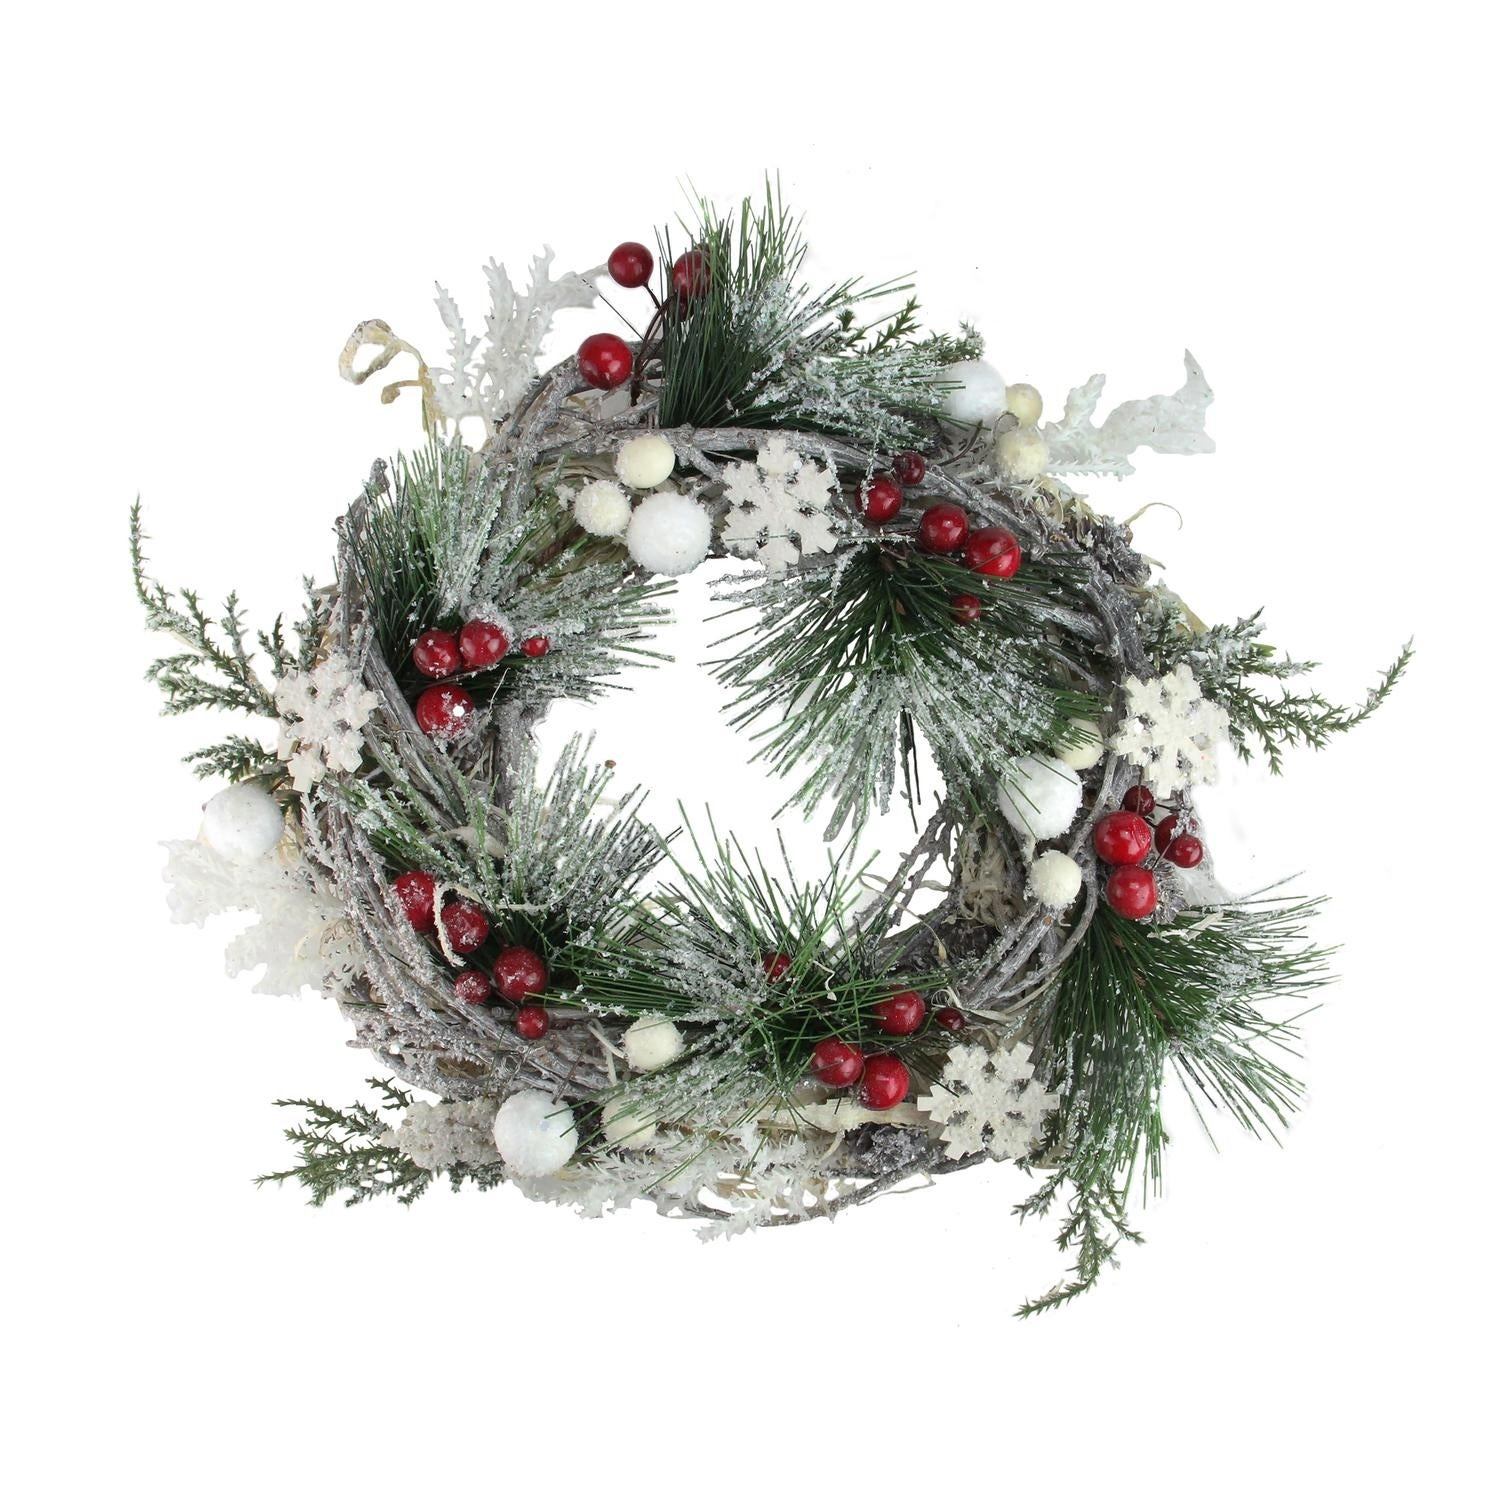 8 75 Snowflakes And Berries Winter Foliage Mini Christmas Wreath Unlit Overstock 18878032